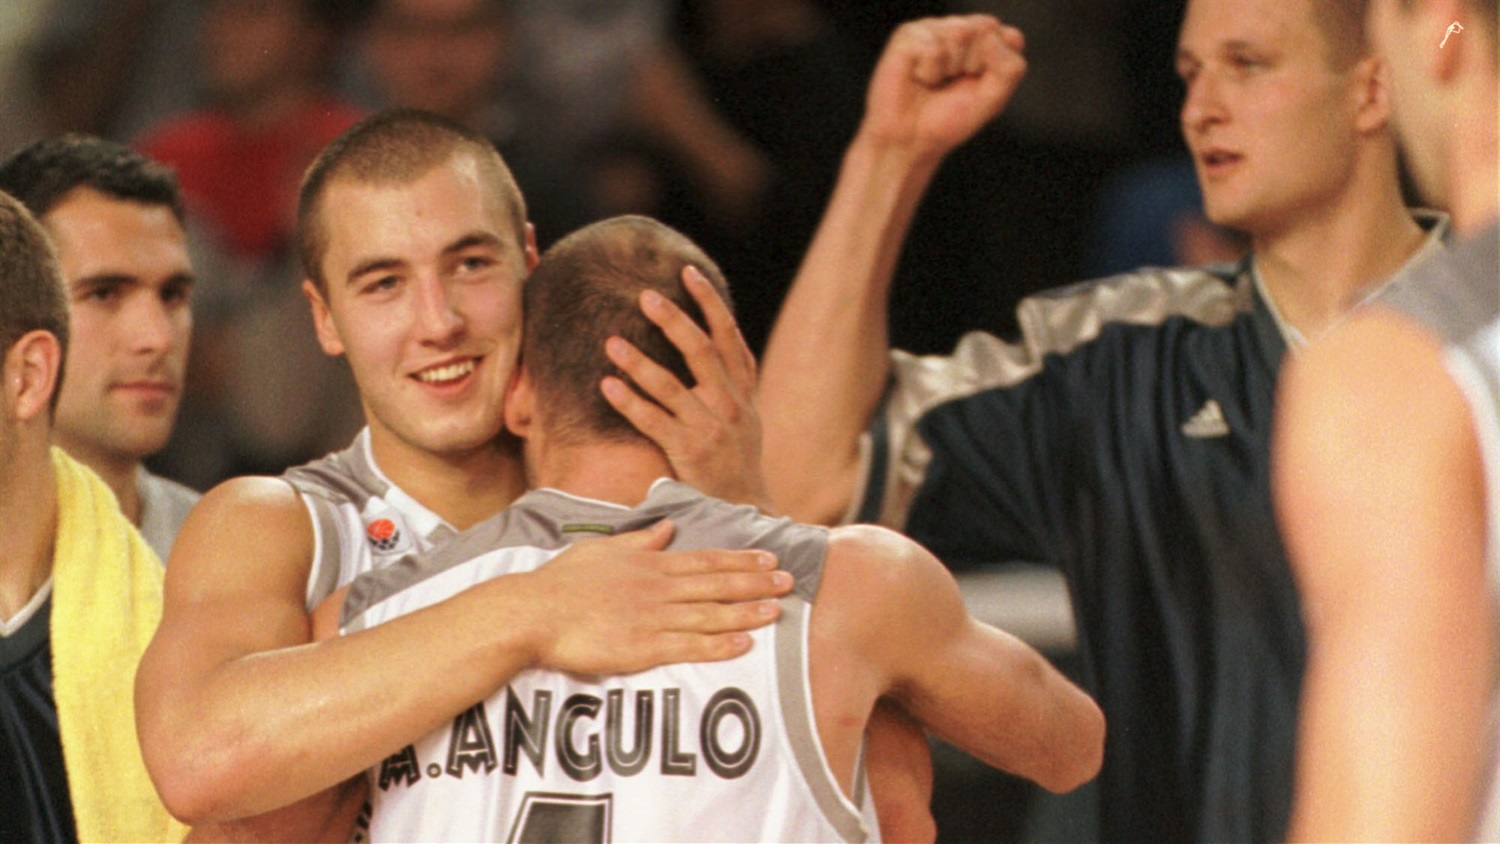 Real Madrid players celebrate first EuroLeague win